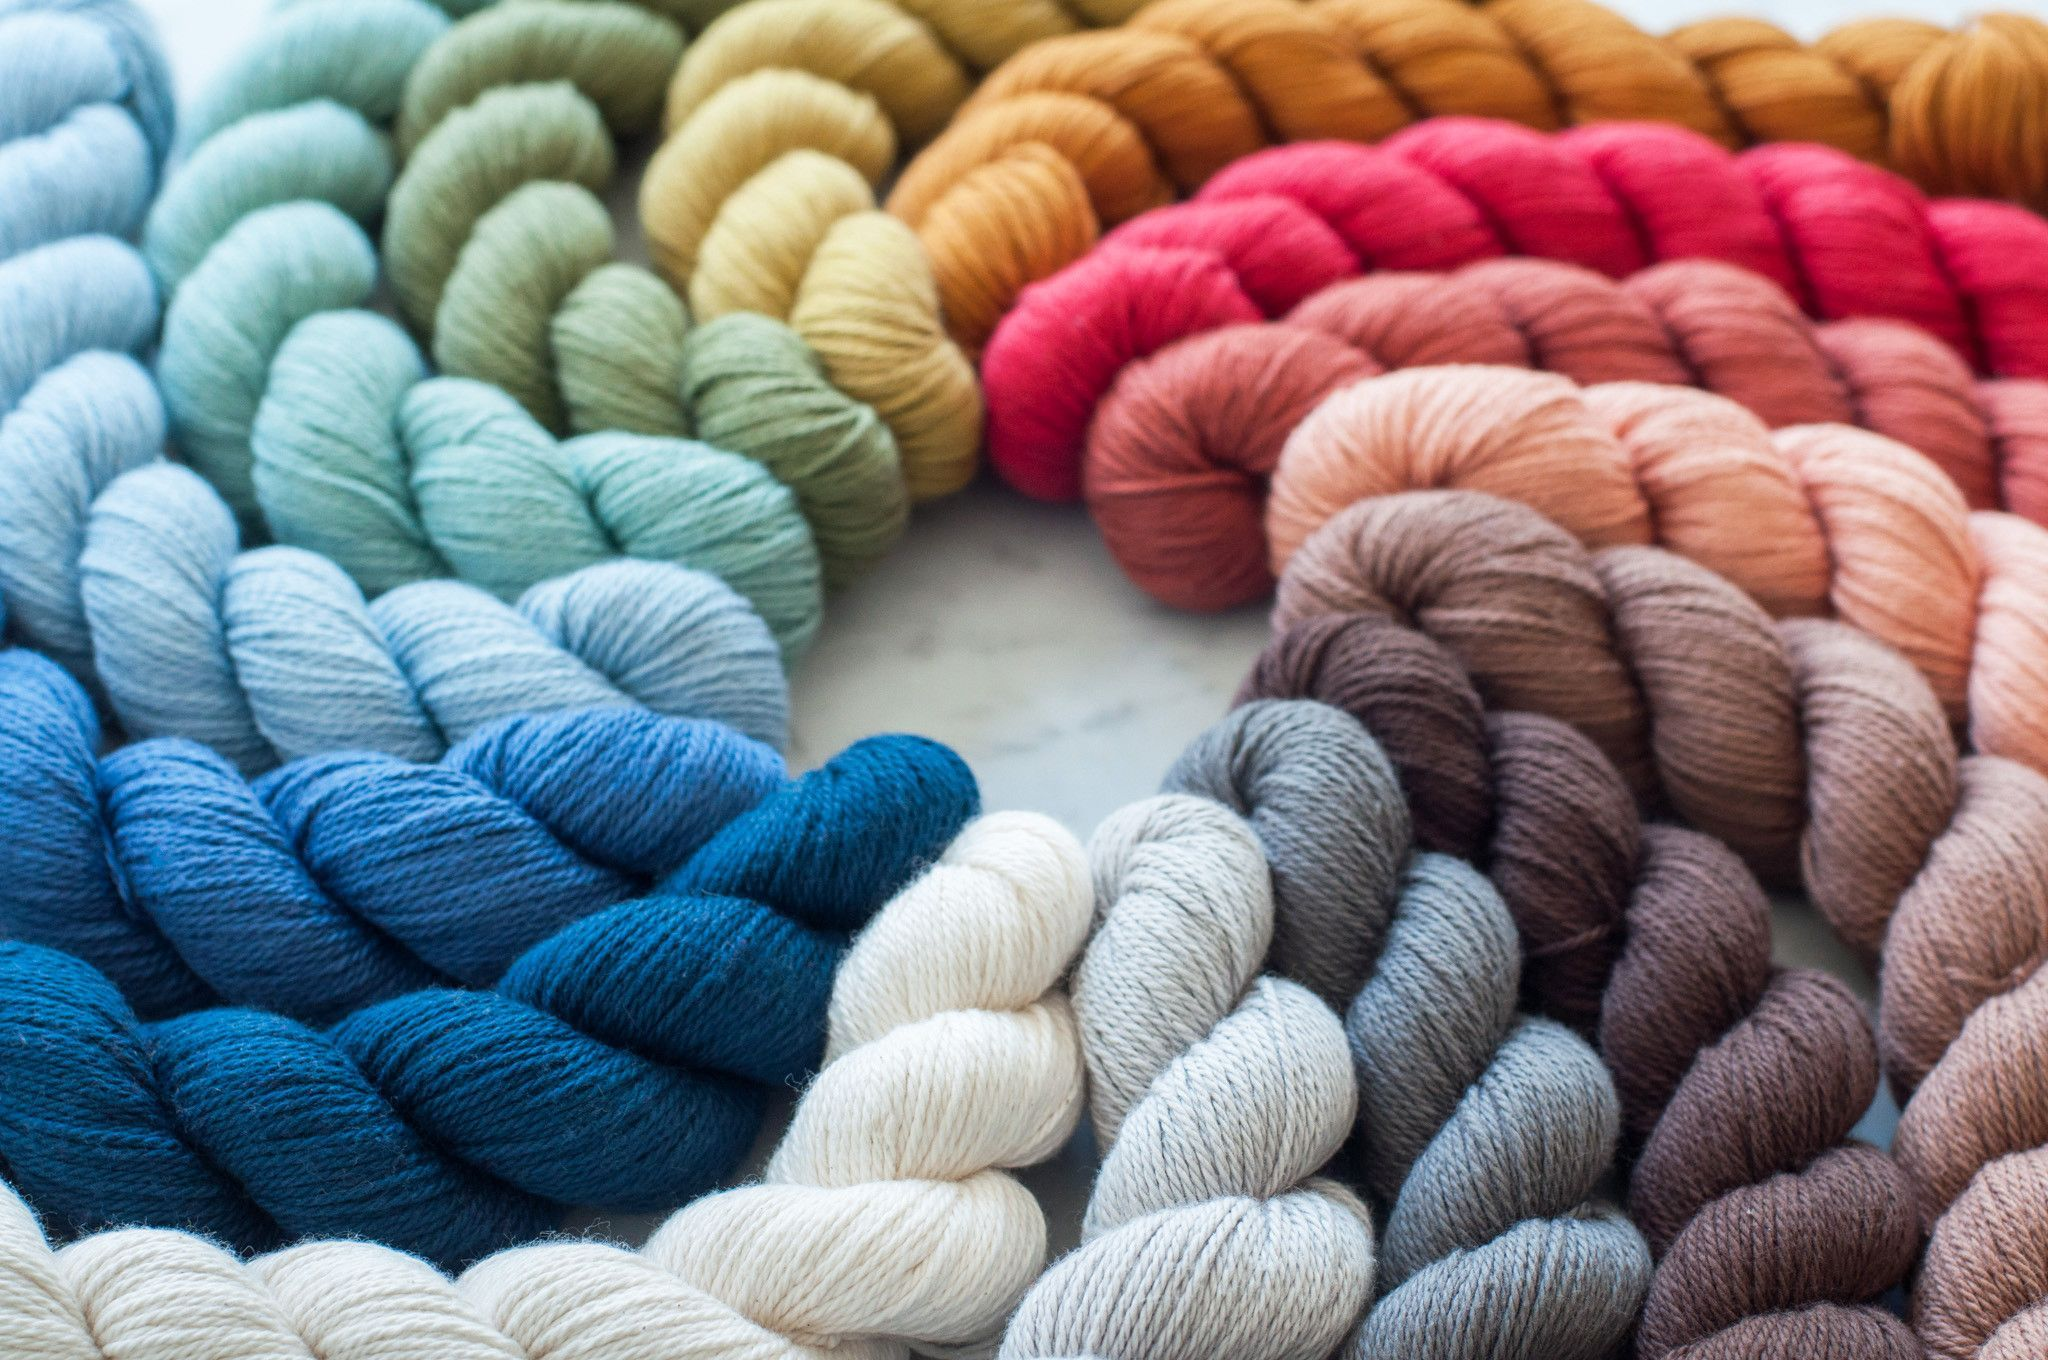 best images about yarn natural dyeing wool and 17 best images about yarn natural dyeing wool and wooden floating shelves